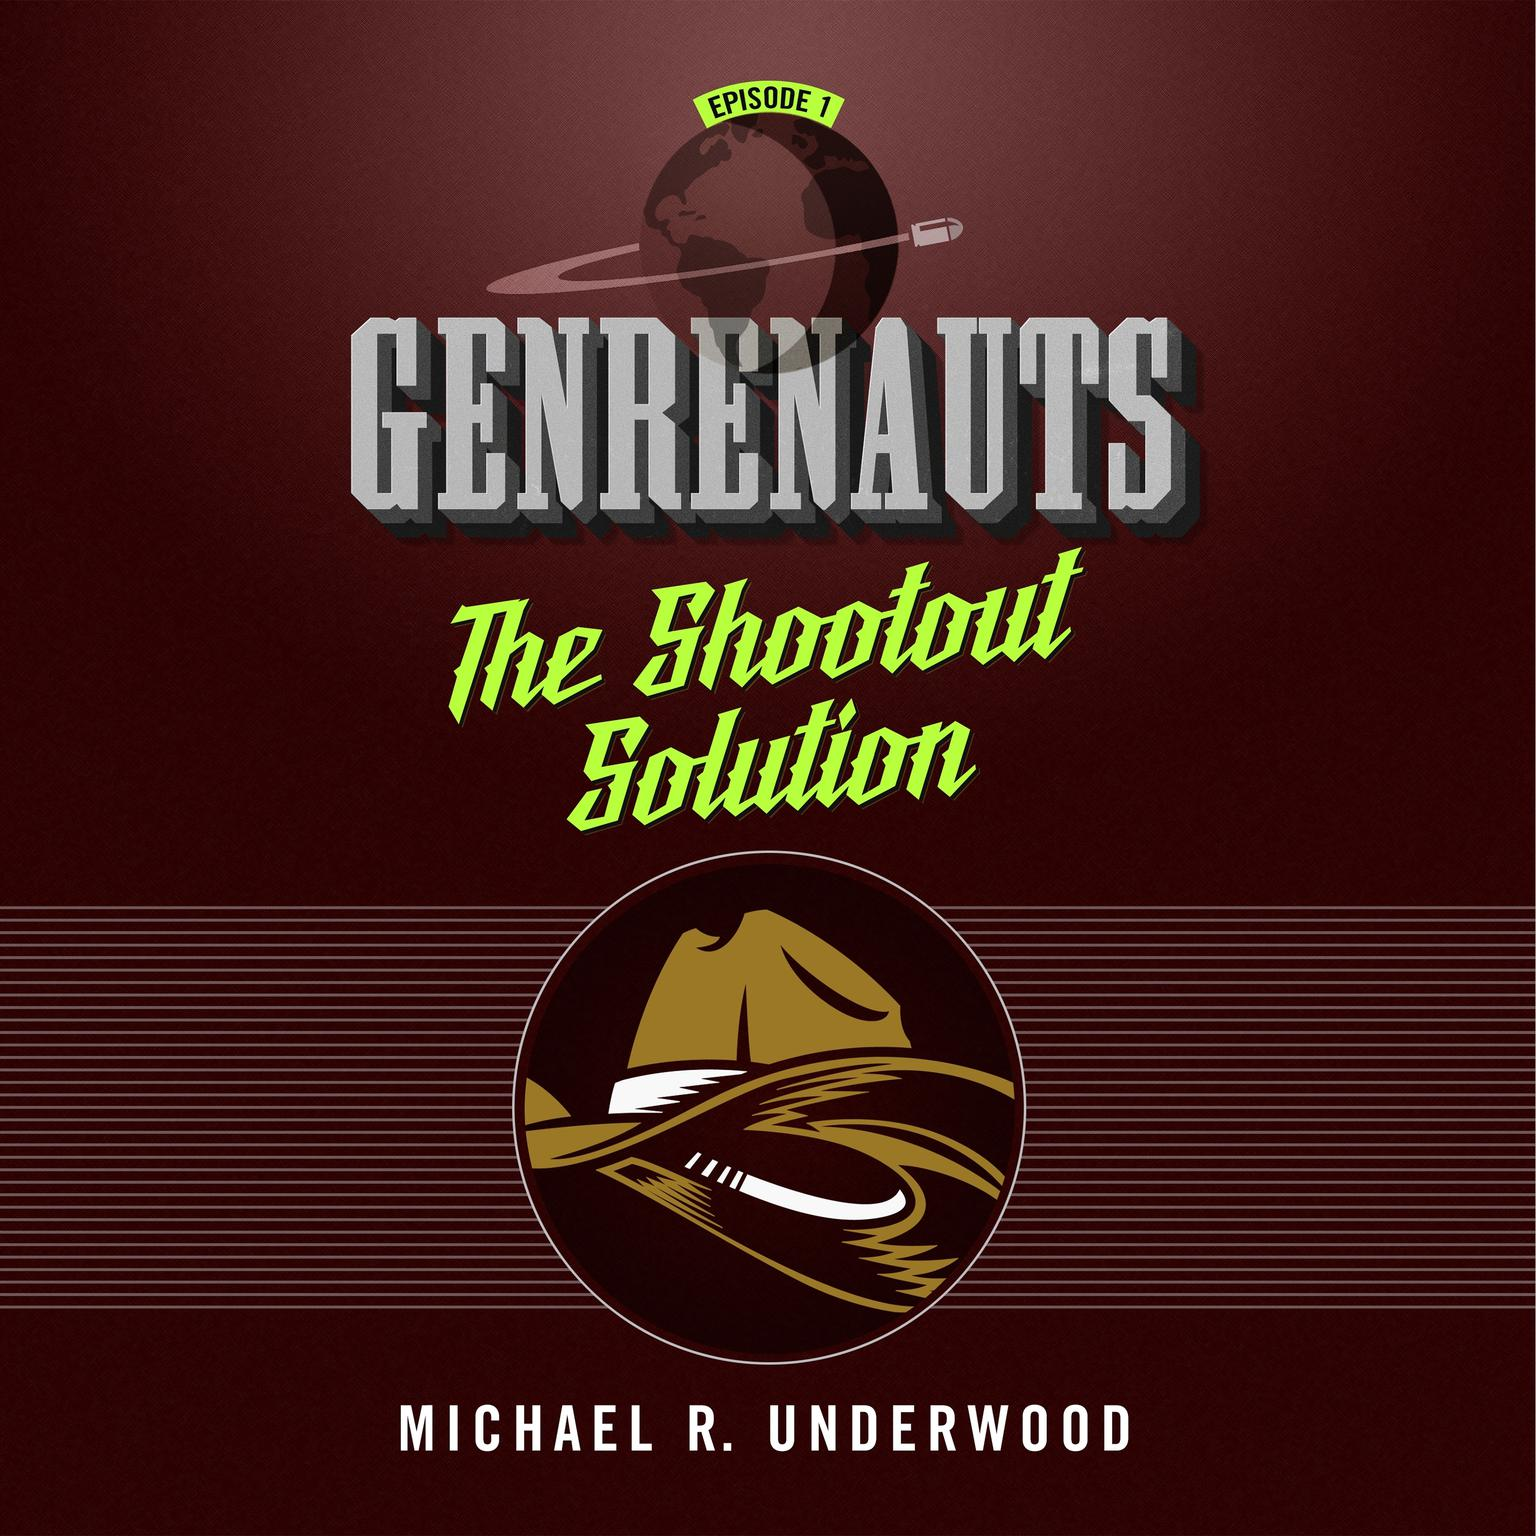 Printable The Shootout Solution: Genrenauts Episode 1 Audiobook Cover Art